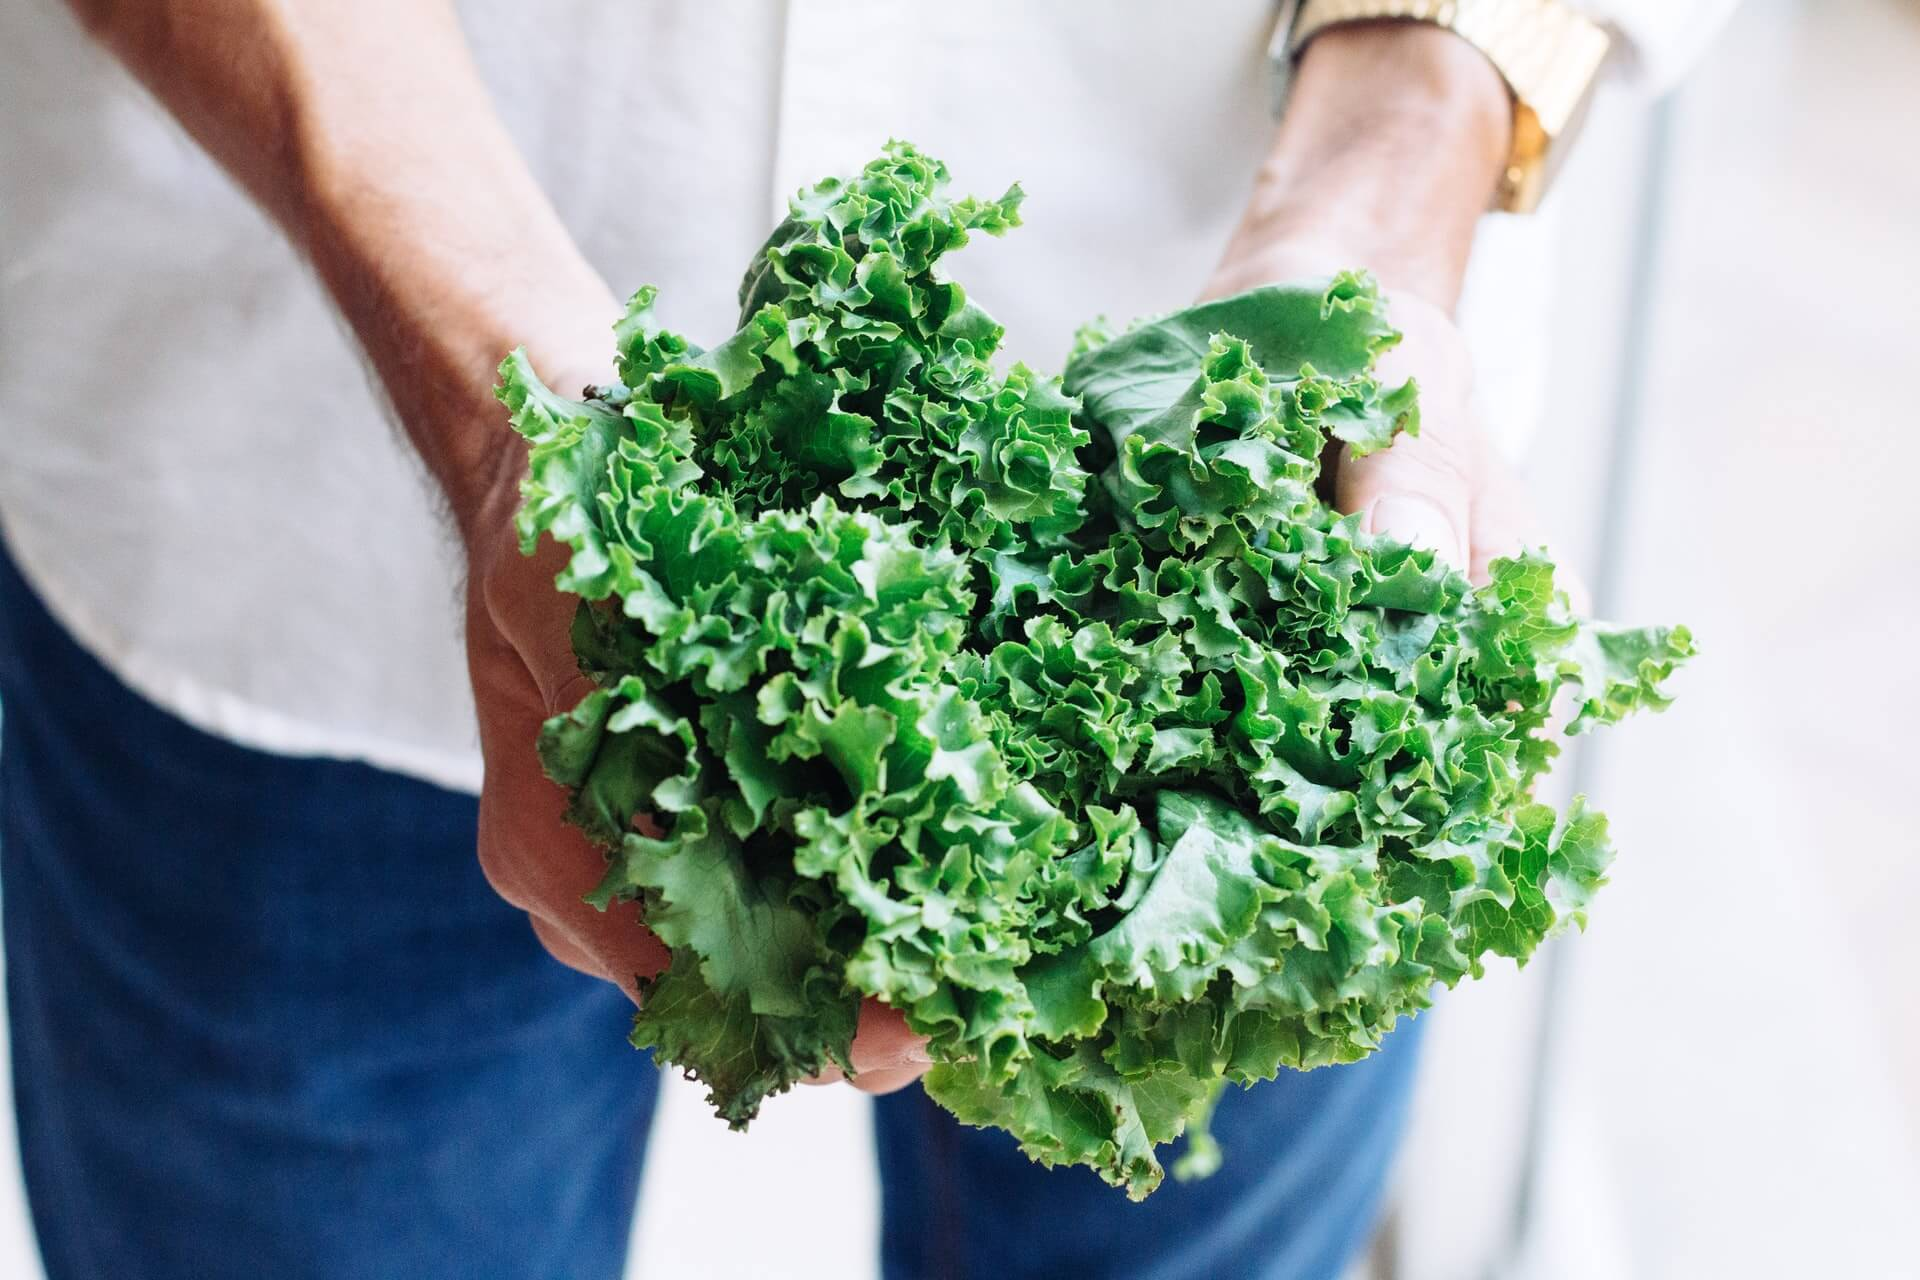 bottom half of a person hand holding lettuce leaves